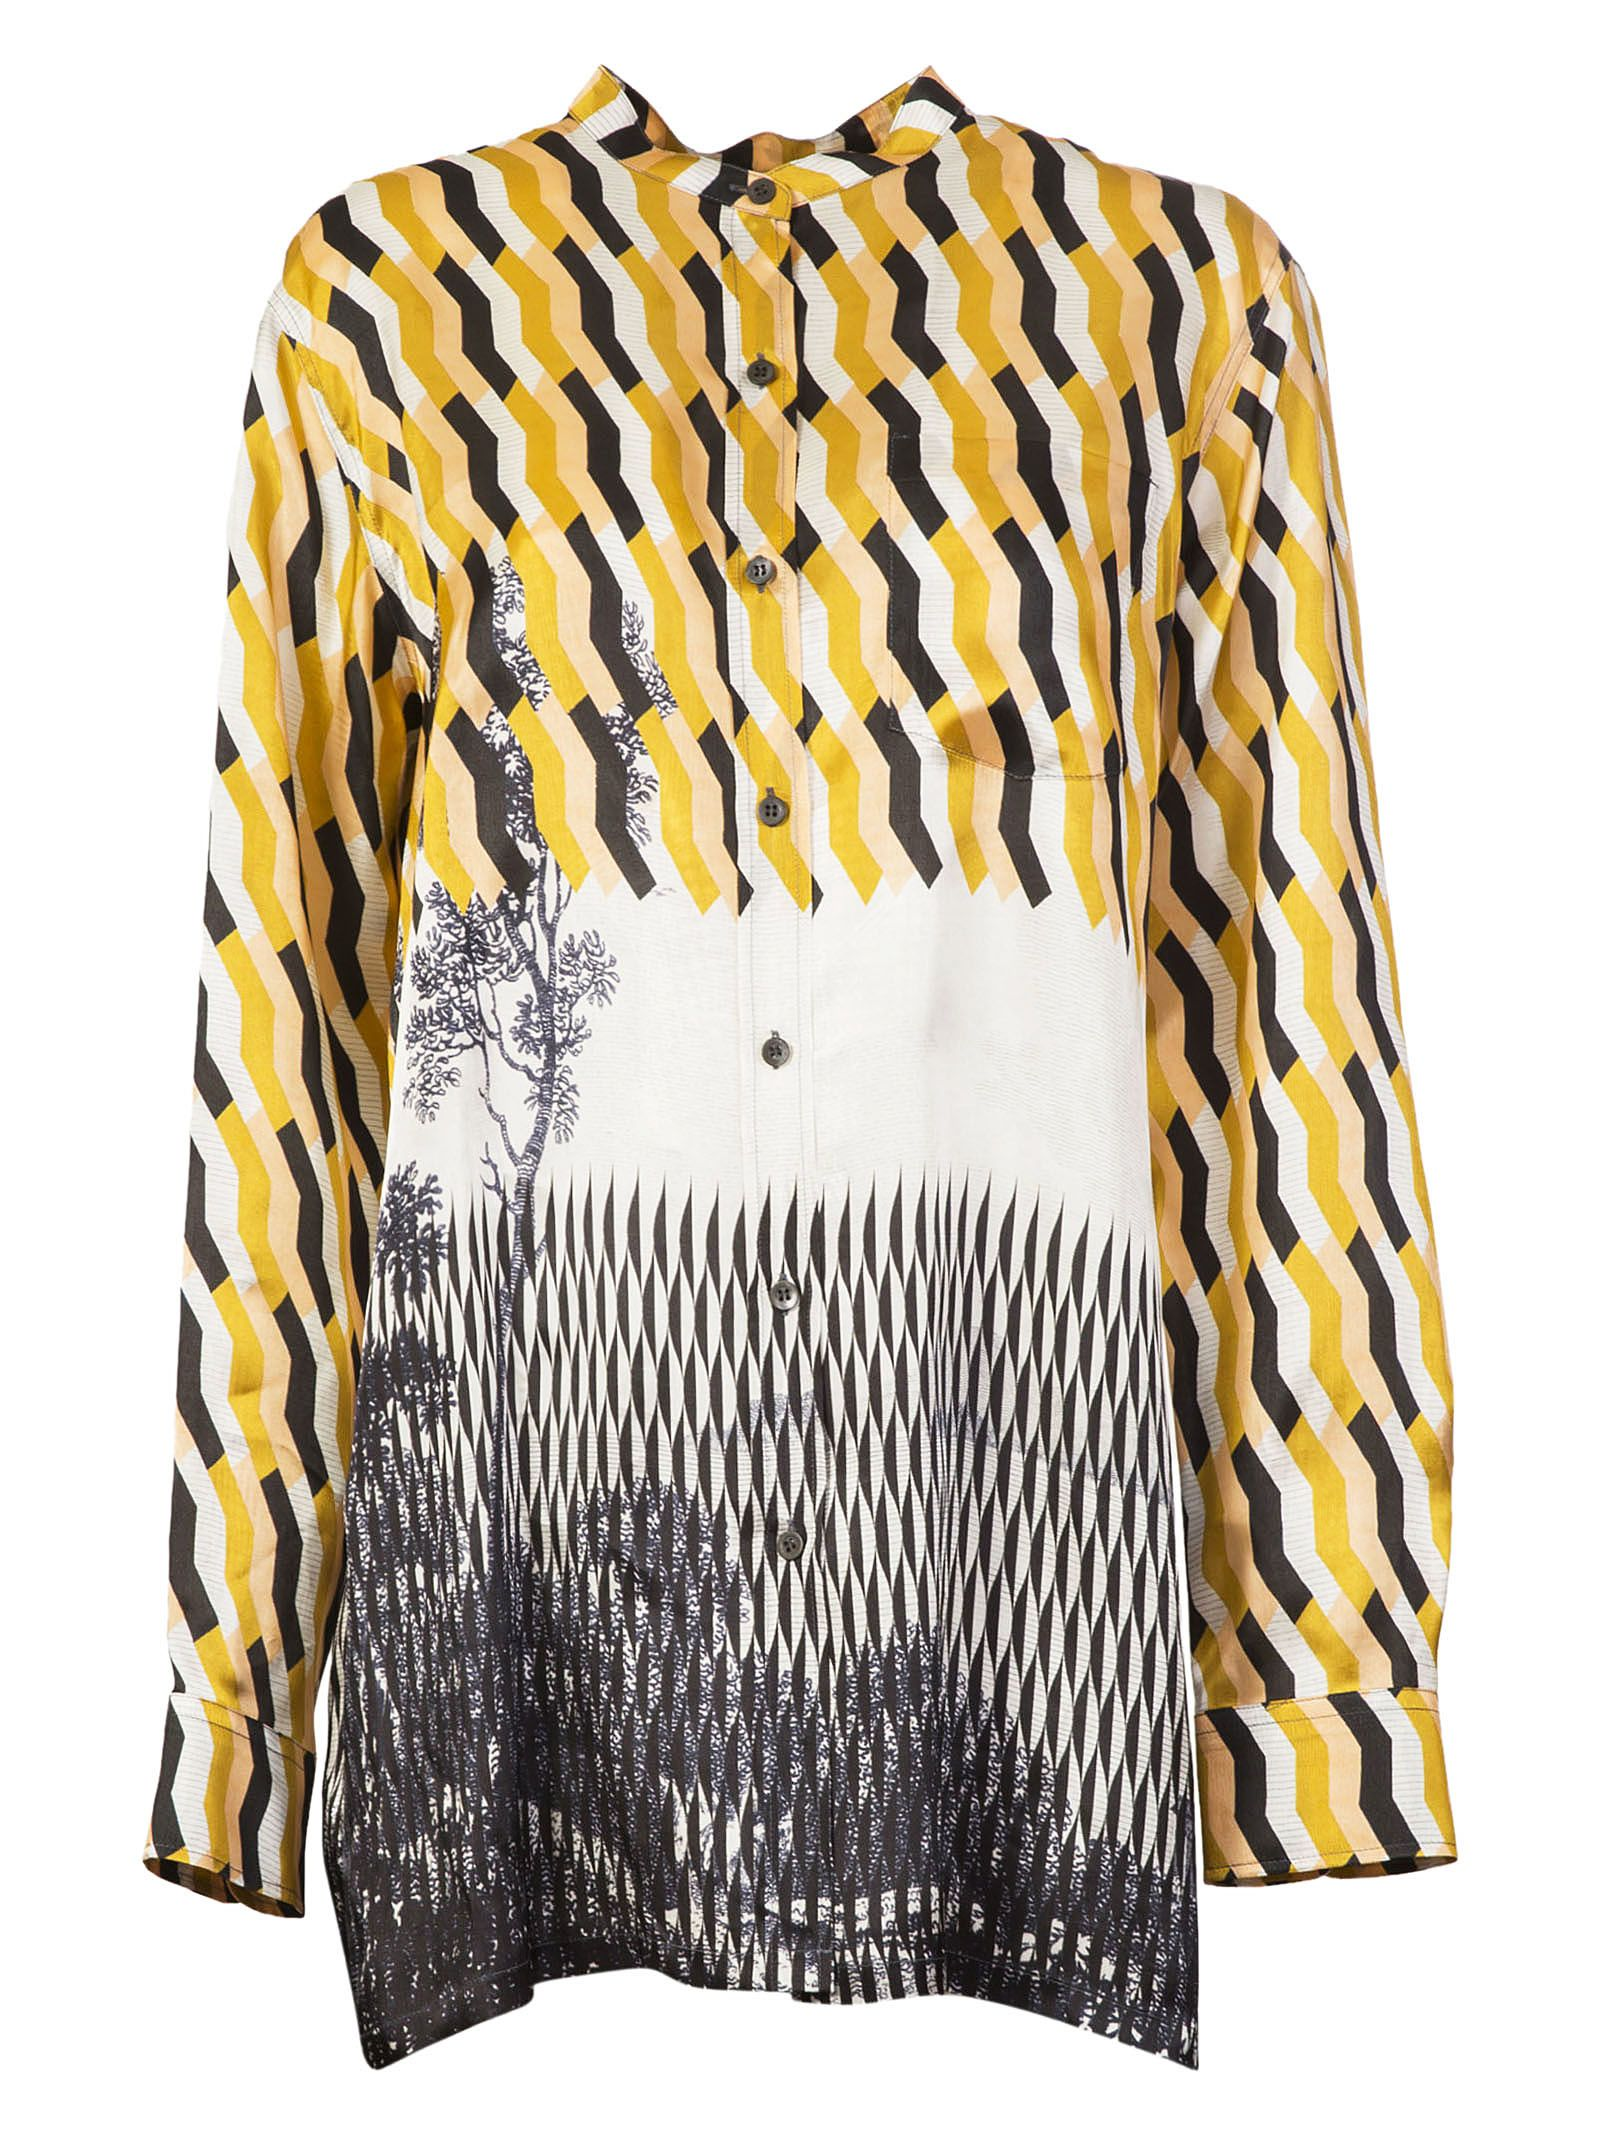 Dries Van Noten Calyba Geometric Print Shirt